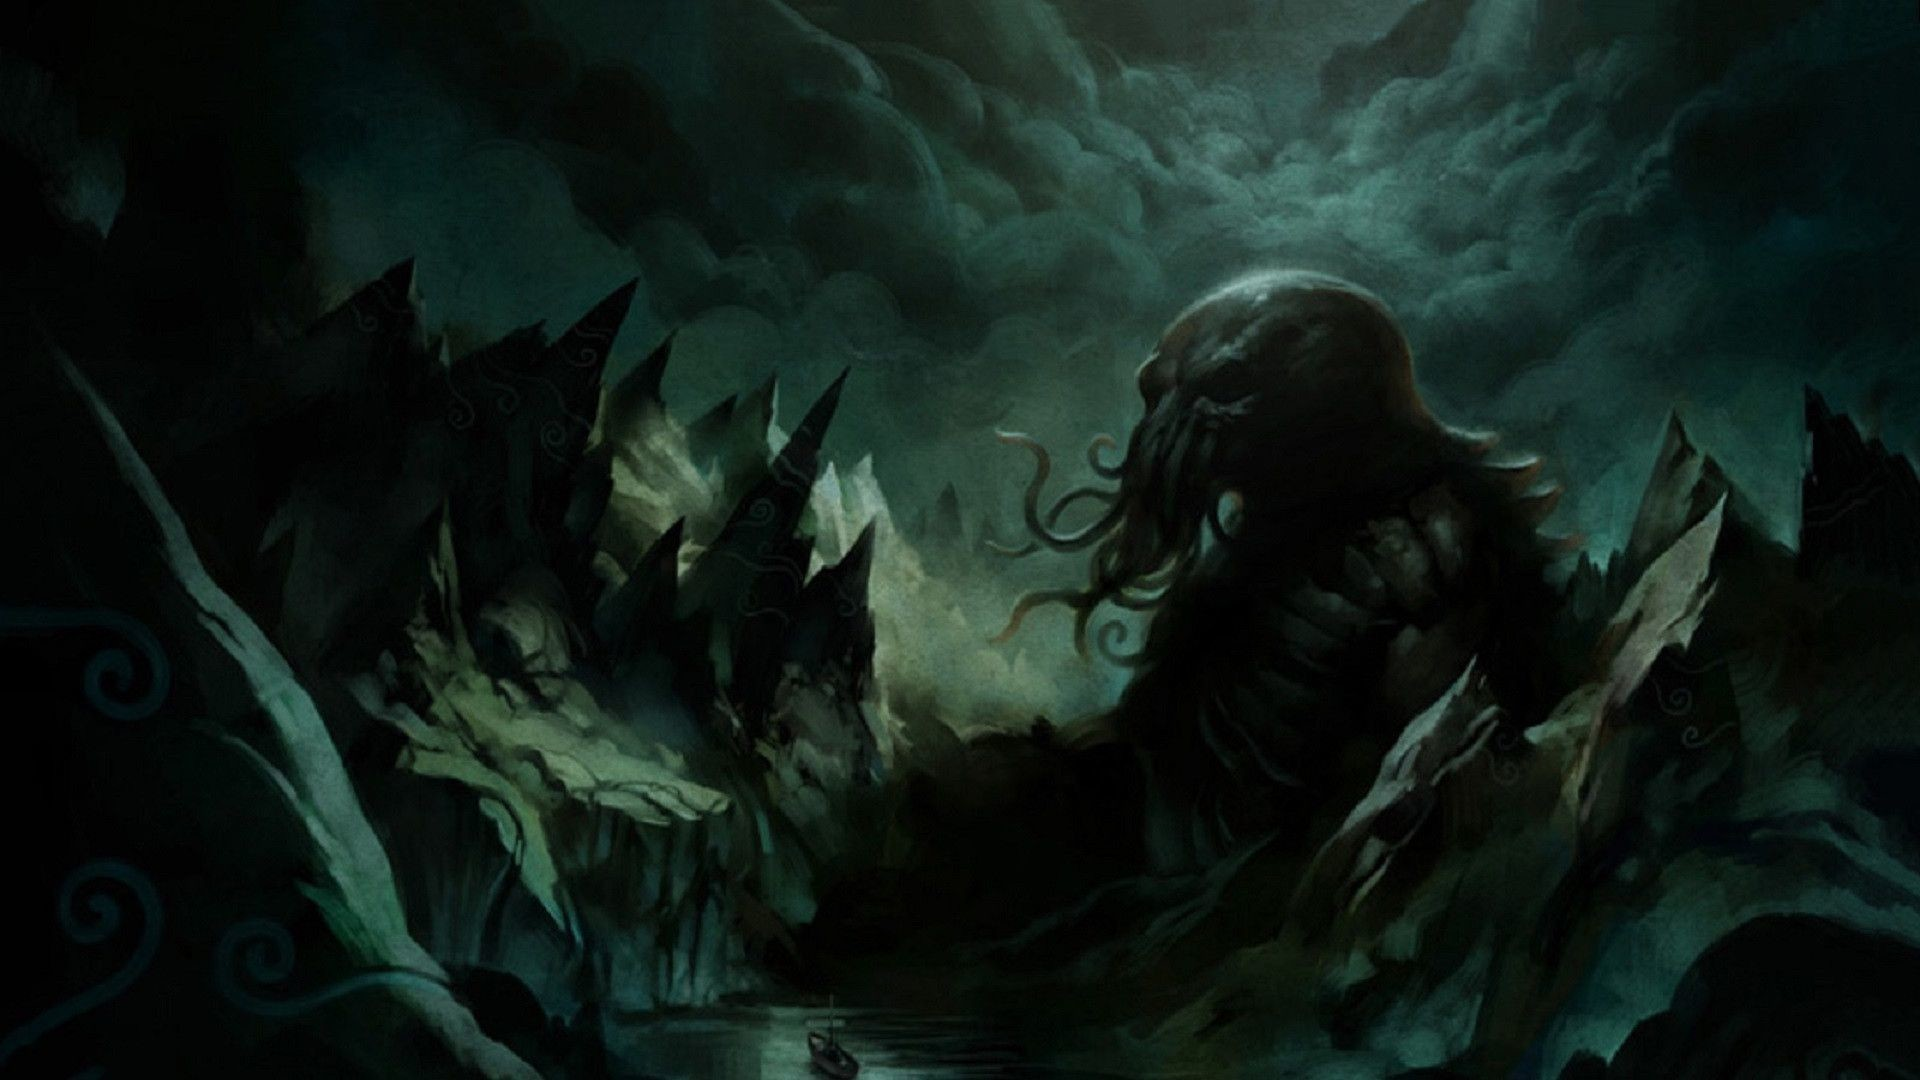 Res: 1920x1080, Cthulhu Wallpapers - Wallpaper Cave